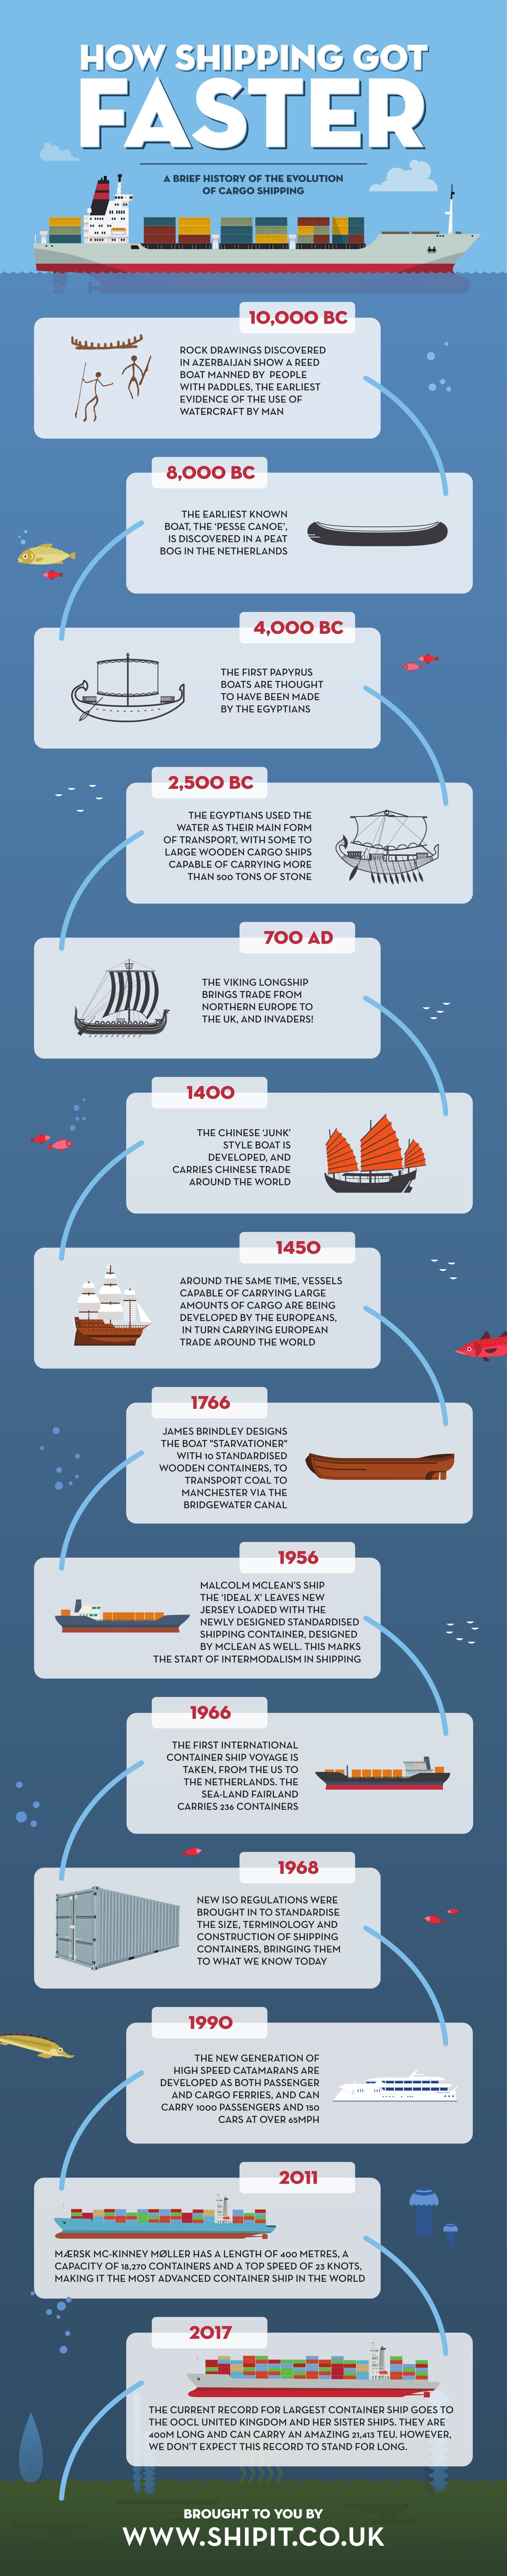 How shipping got faster infographic